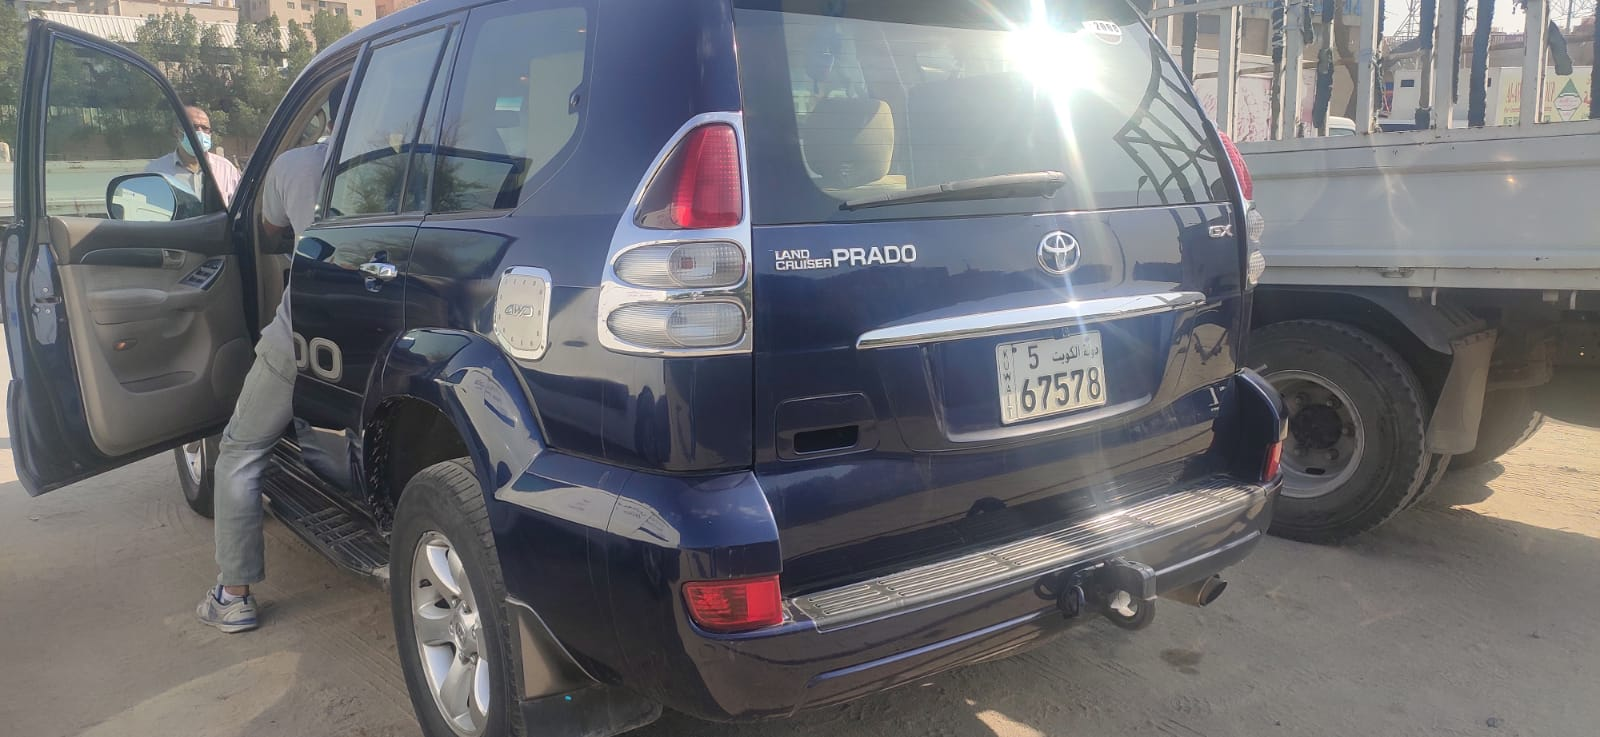 Well Maintained Toyota Prado Car for Sale